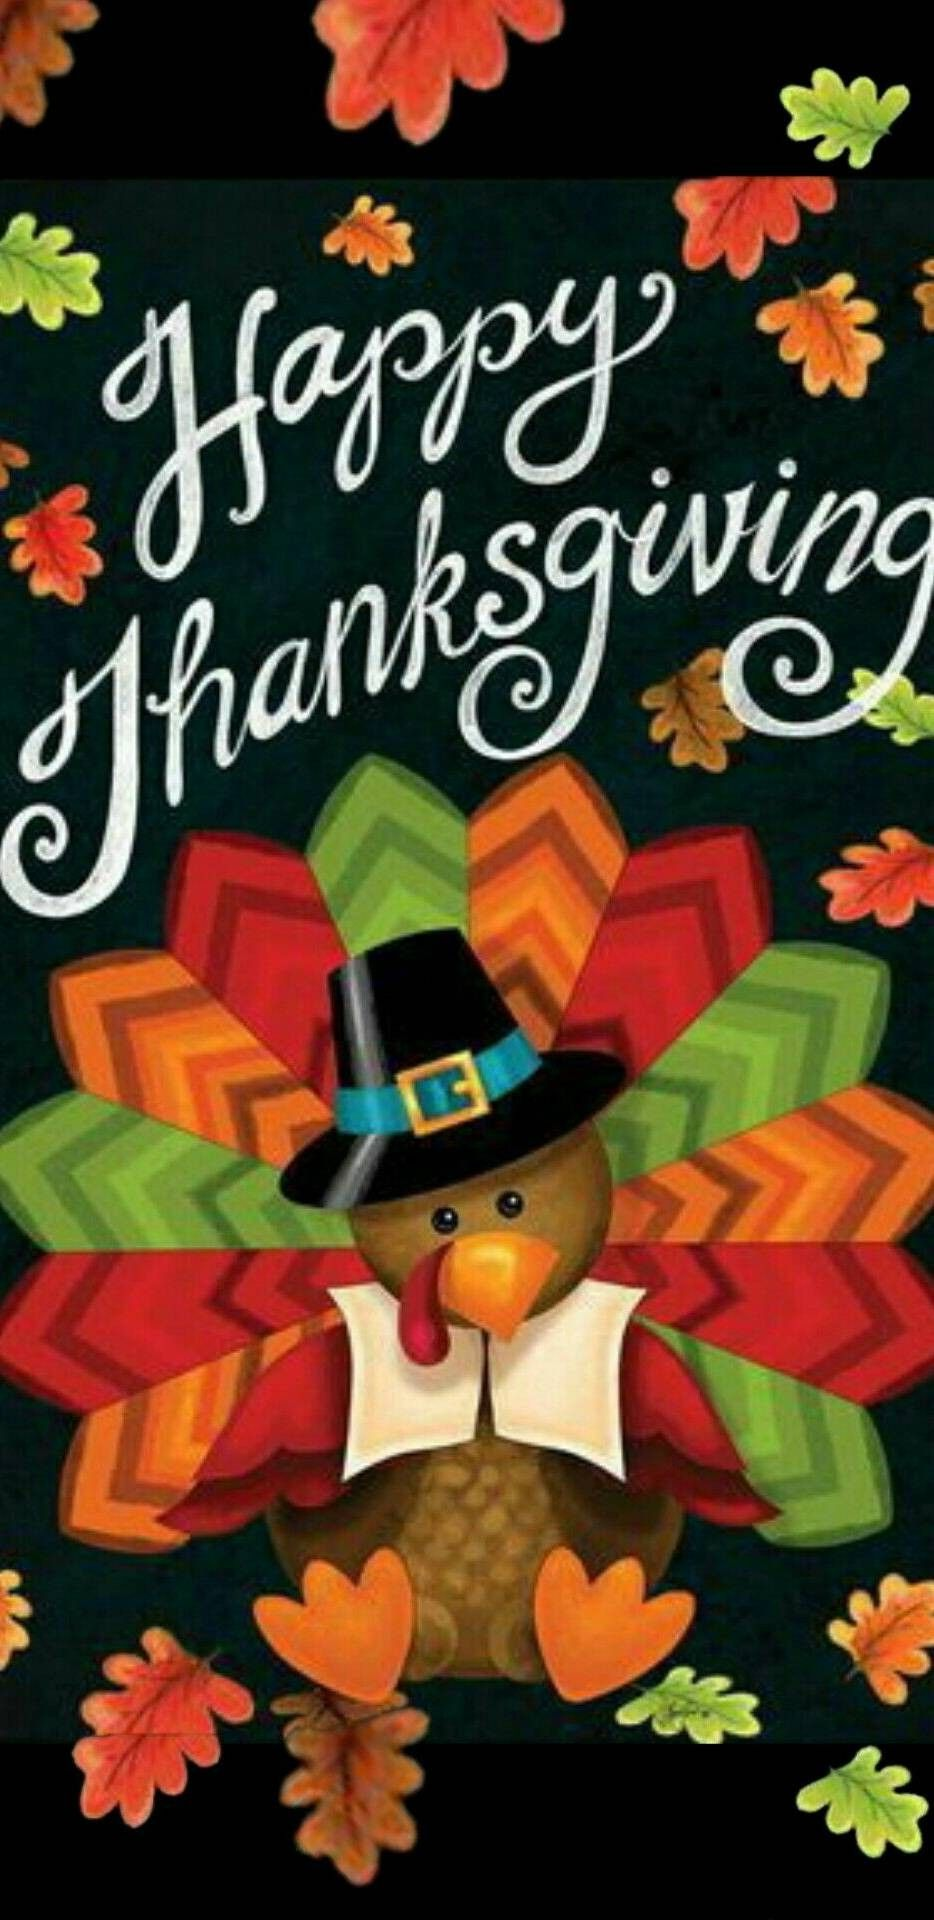 Happy Thanksgiving Day Parade And In 2020 Happy Thanksgiving Turkey Thanksgiving Greetings Happy Thanksgiving Wallpaper